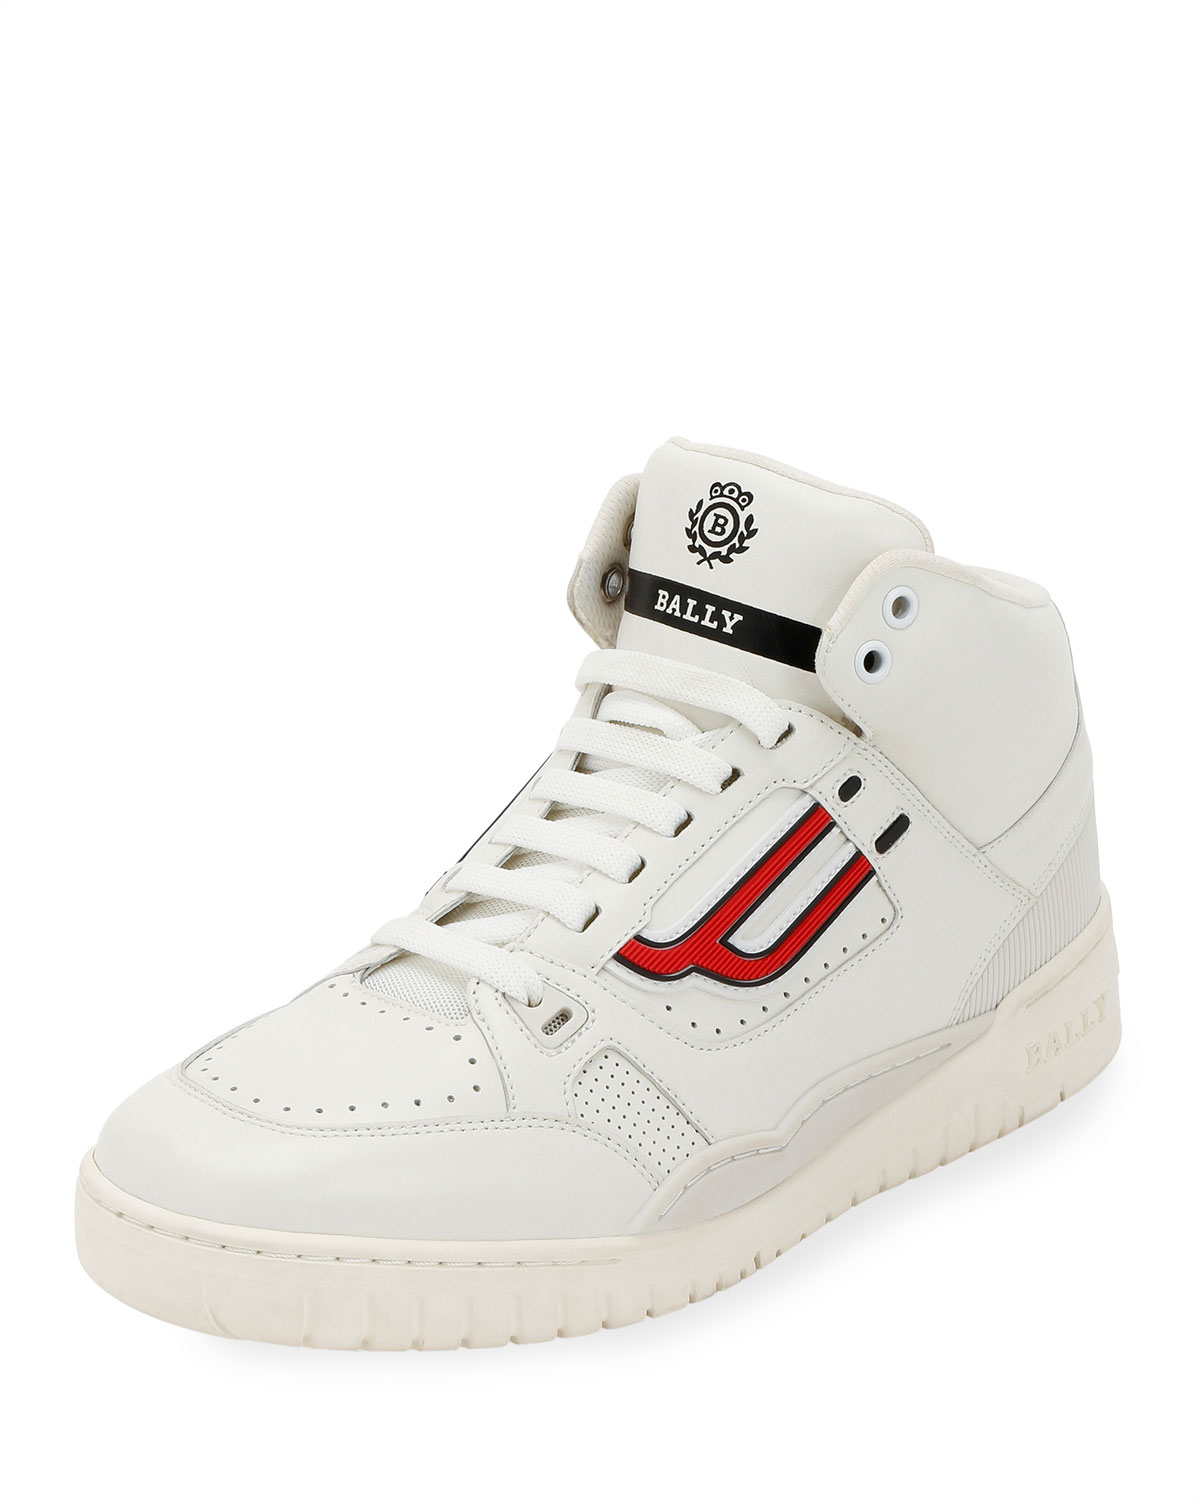 King Leather High-Top Sneakers